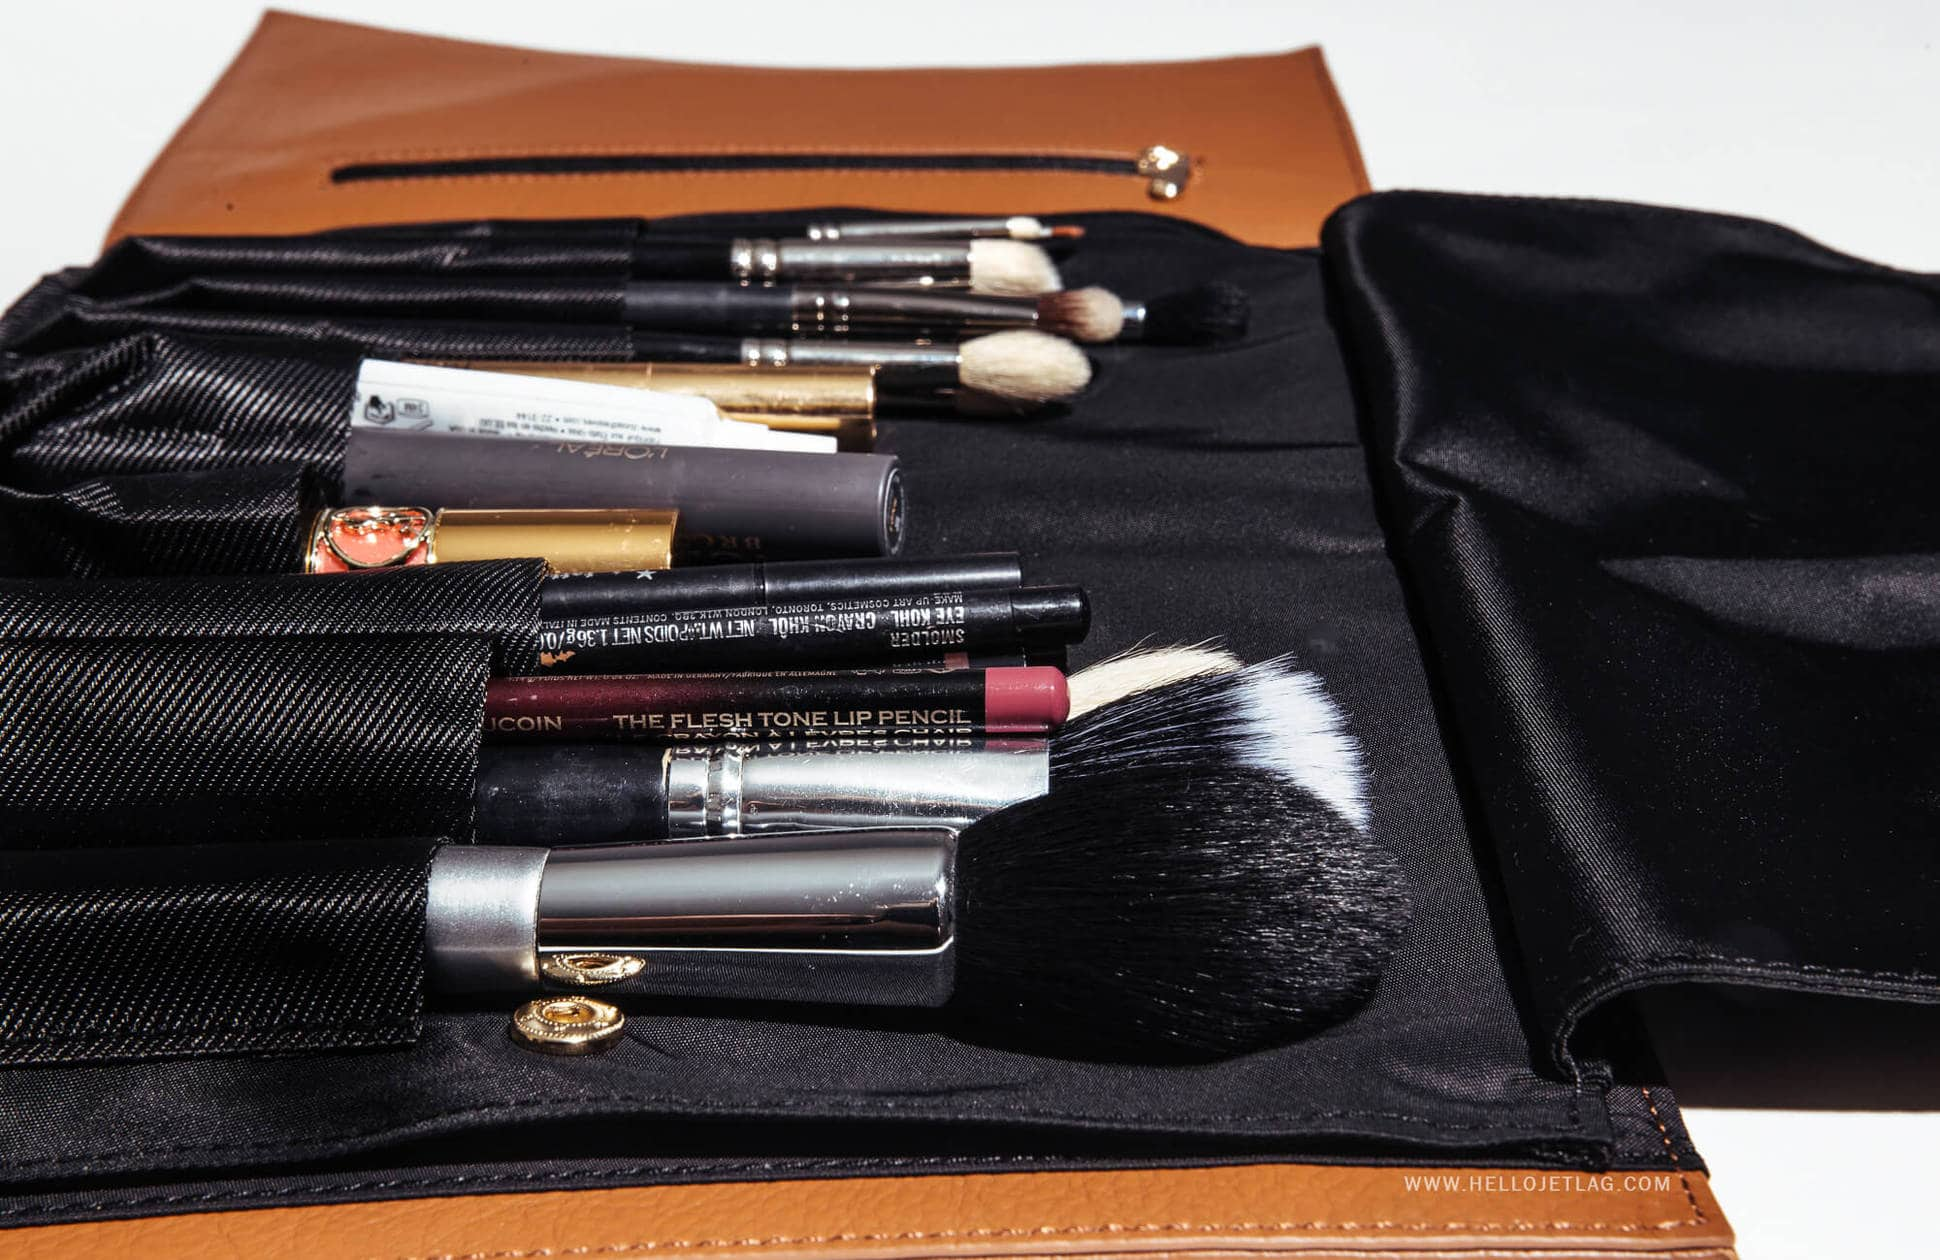 With their chic designs and well executed, organizational features, Kusshi has designed a game changing travel makeup bag. Machine washable and travel friendly, keep reading for a full review, photos and more.